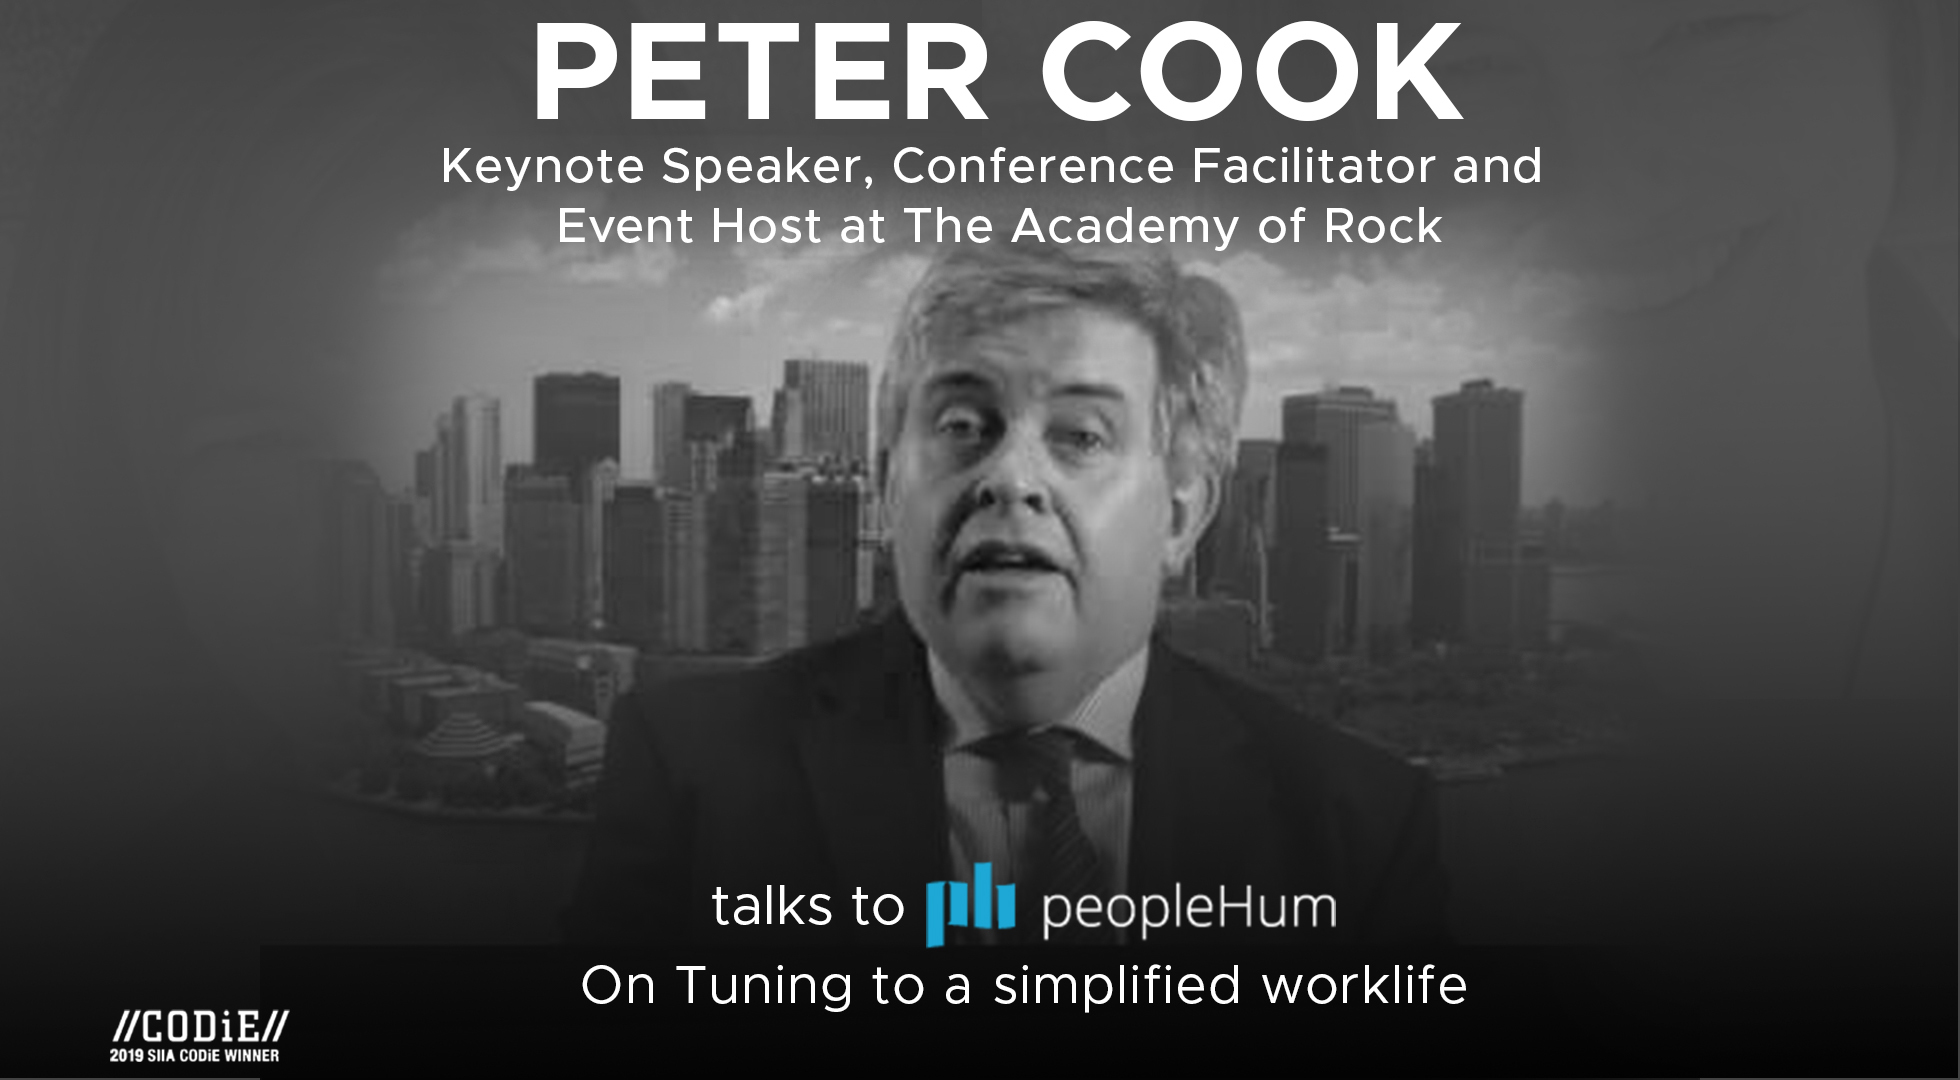 Tuning to a simplified worklife - Peter Cook [Interview]